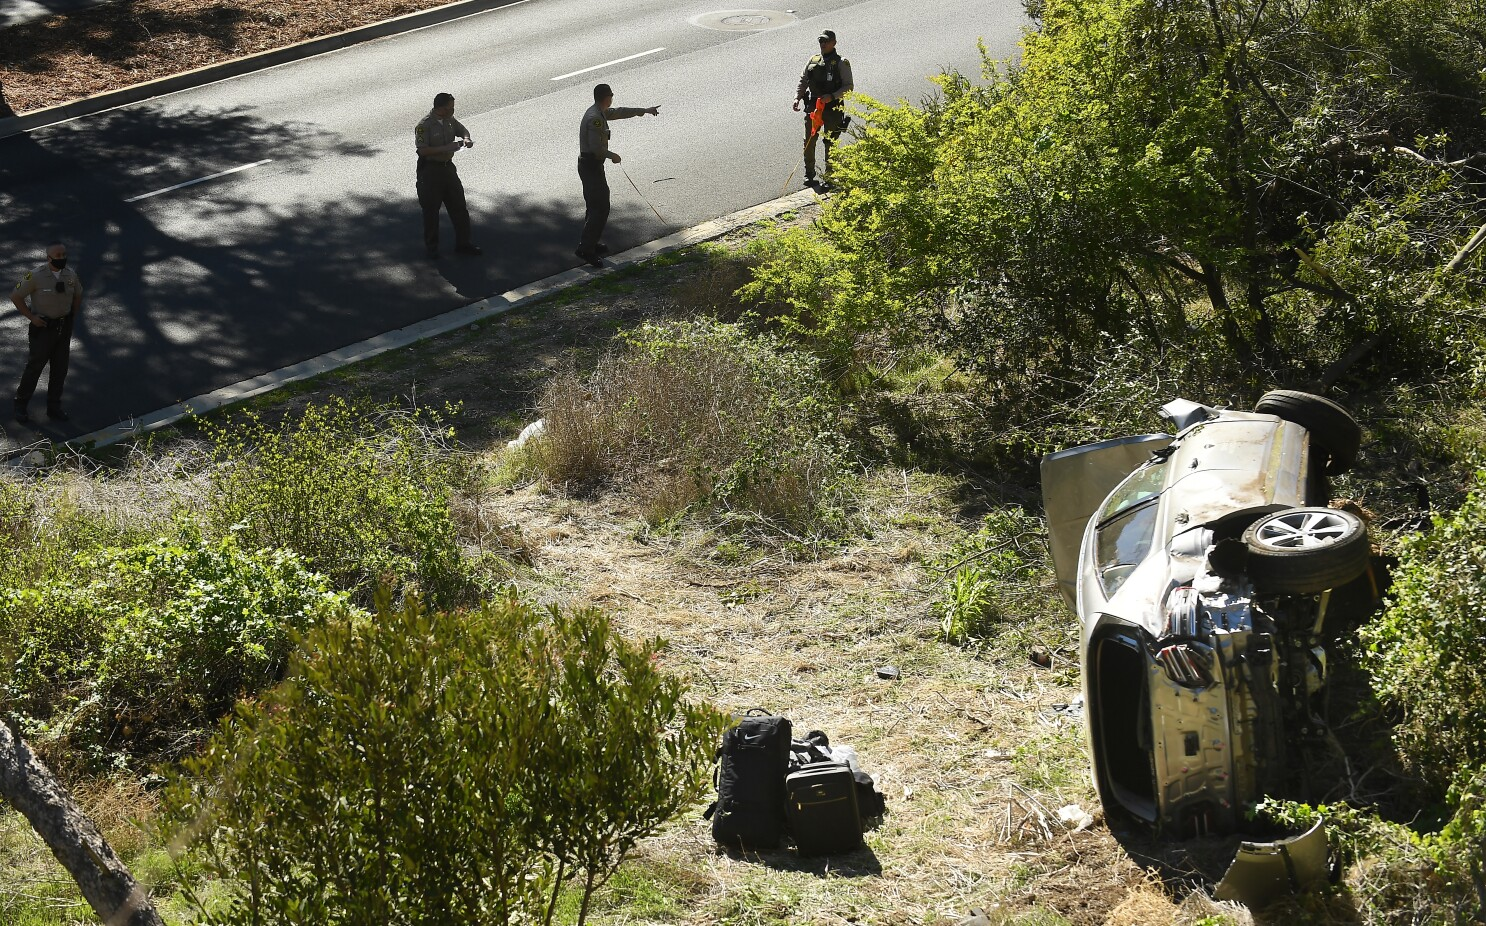 Tiger Woods accident road known for high speeds, danger - Los Angeles Times